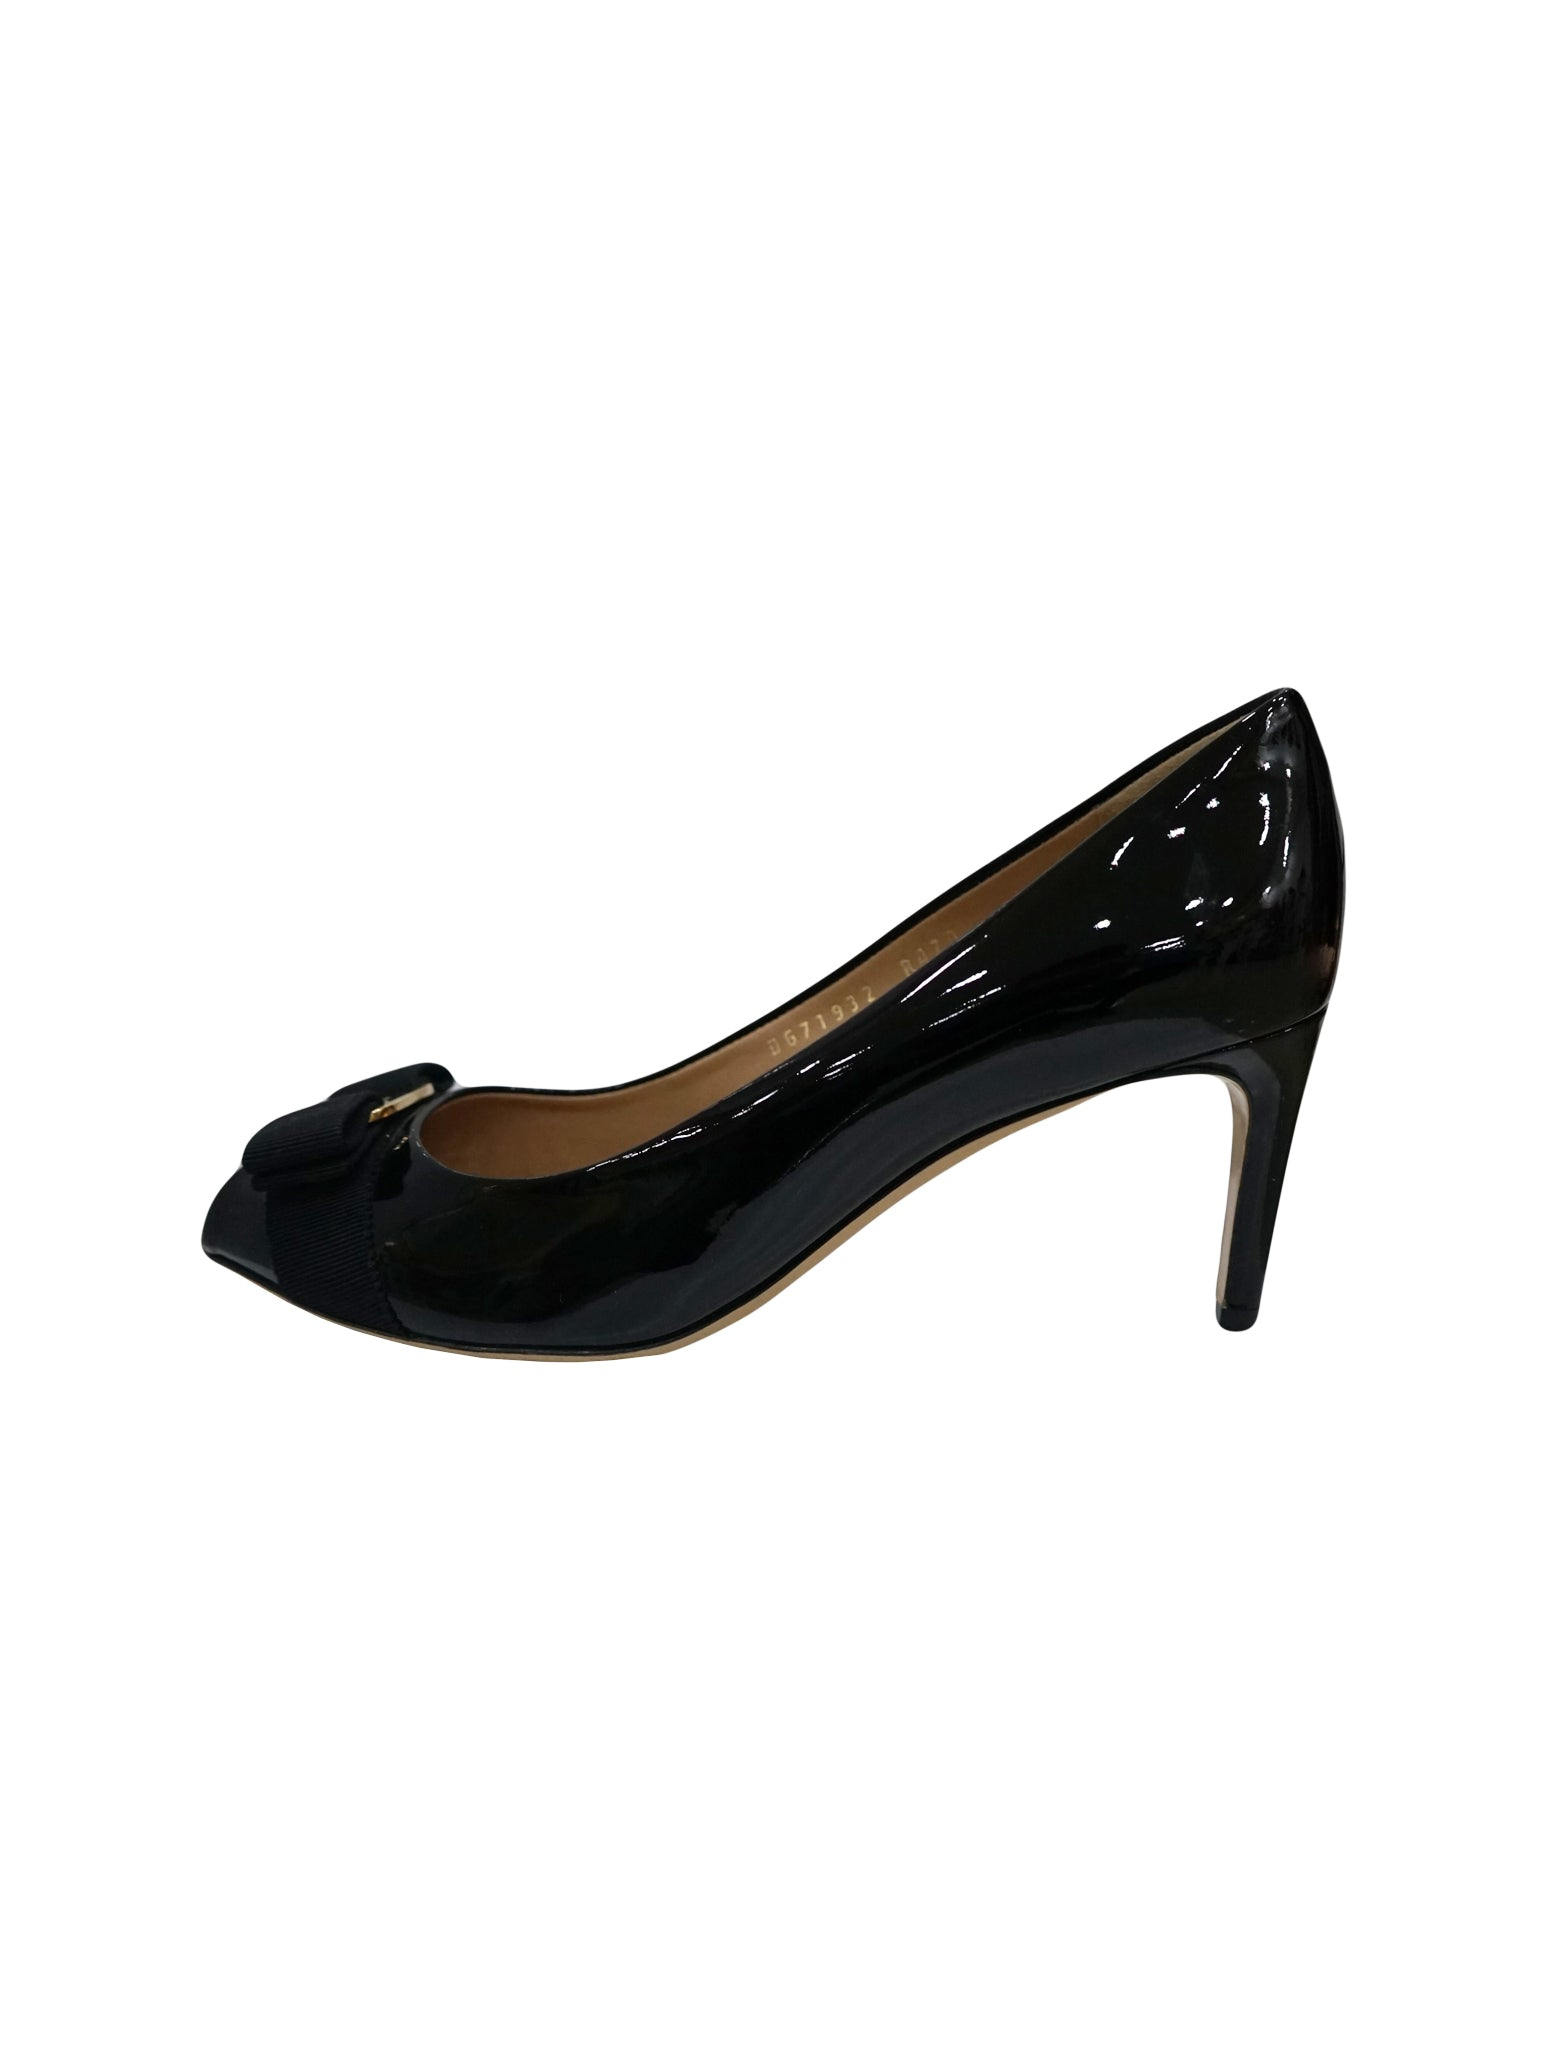 BLACK PATENT LEATHER BOW ACCENT PEEP TOE PUMPS 8.5